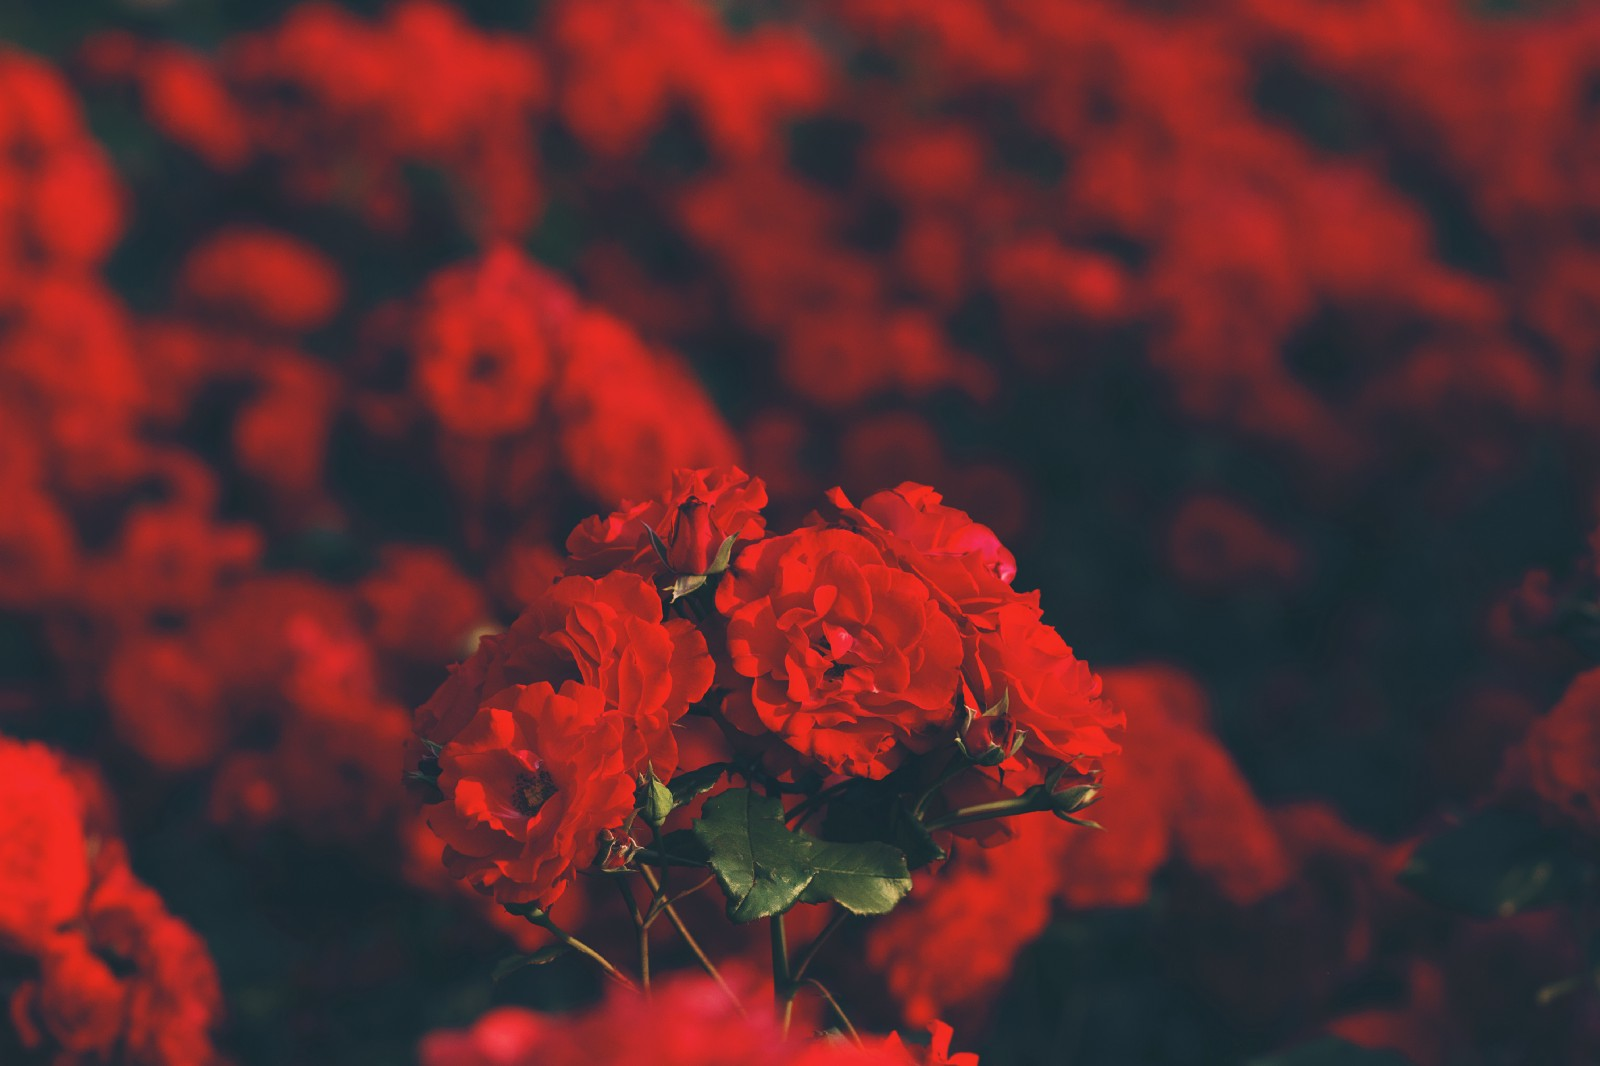 U201cA Breathtaking View Of Dozens Of Red Roses In Bloomu201d By Alina Sofia On  Unsplash